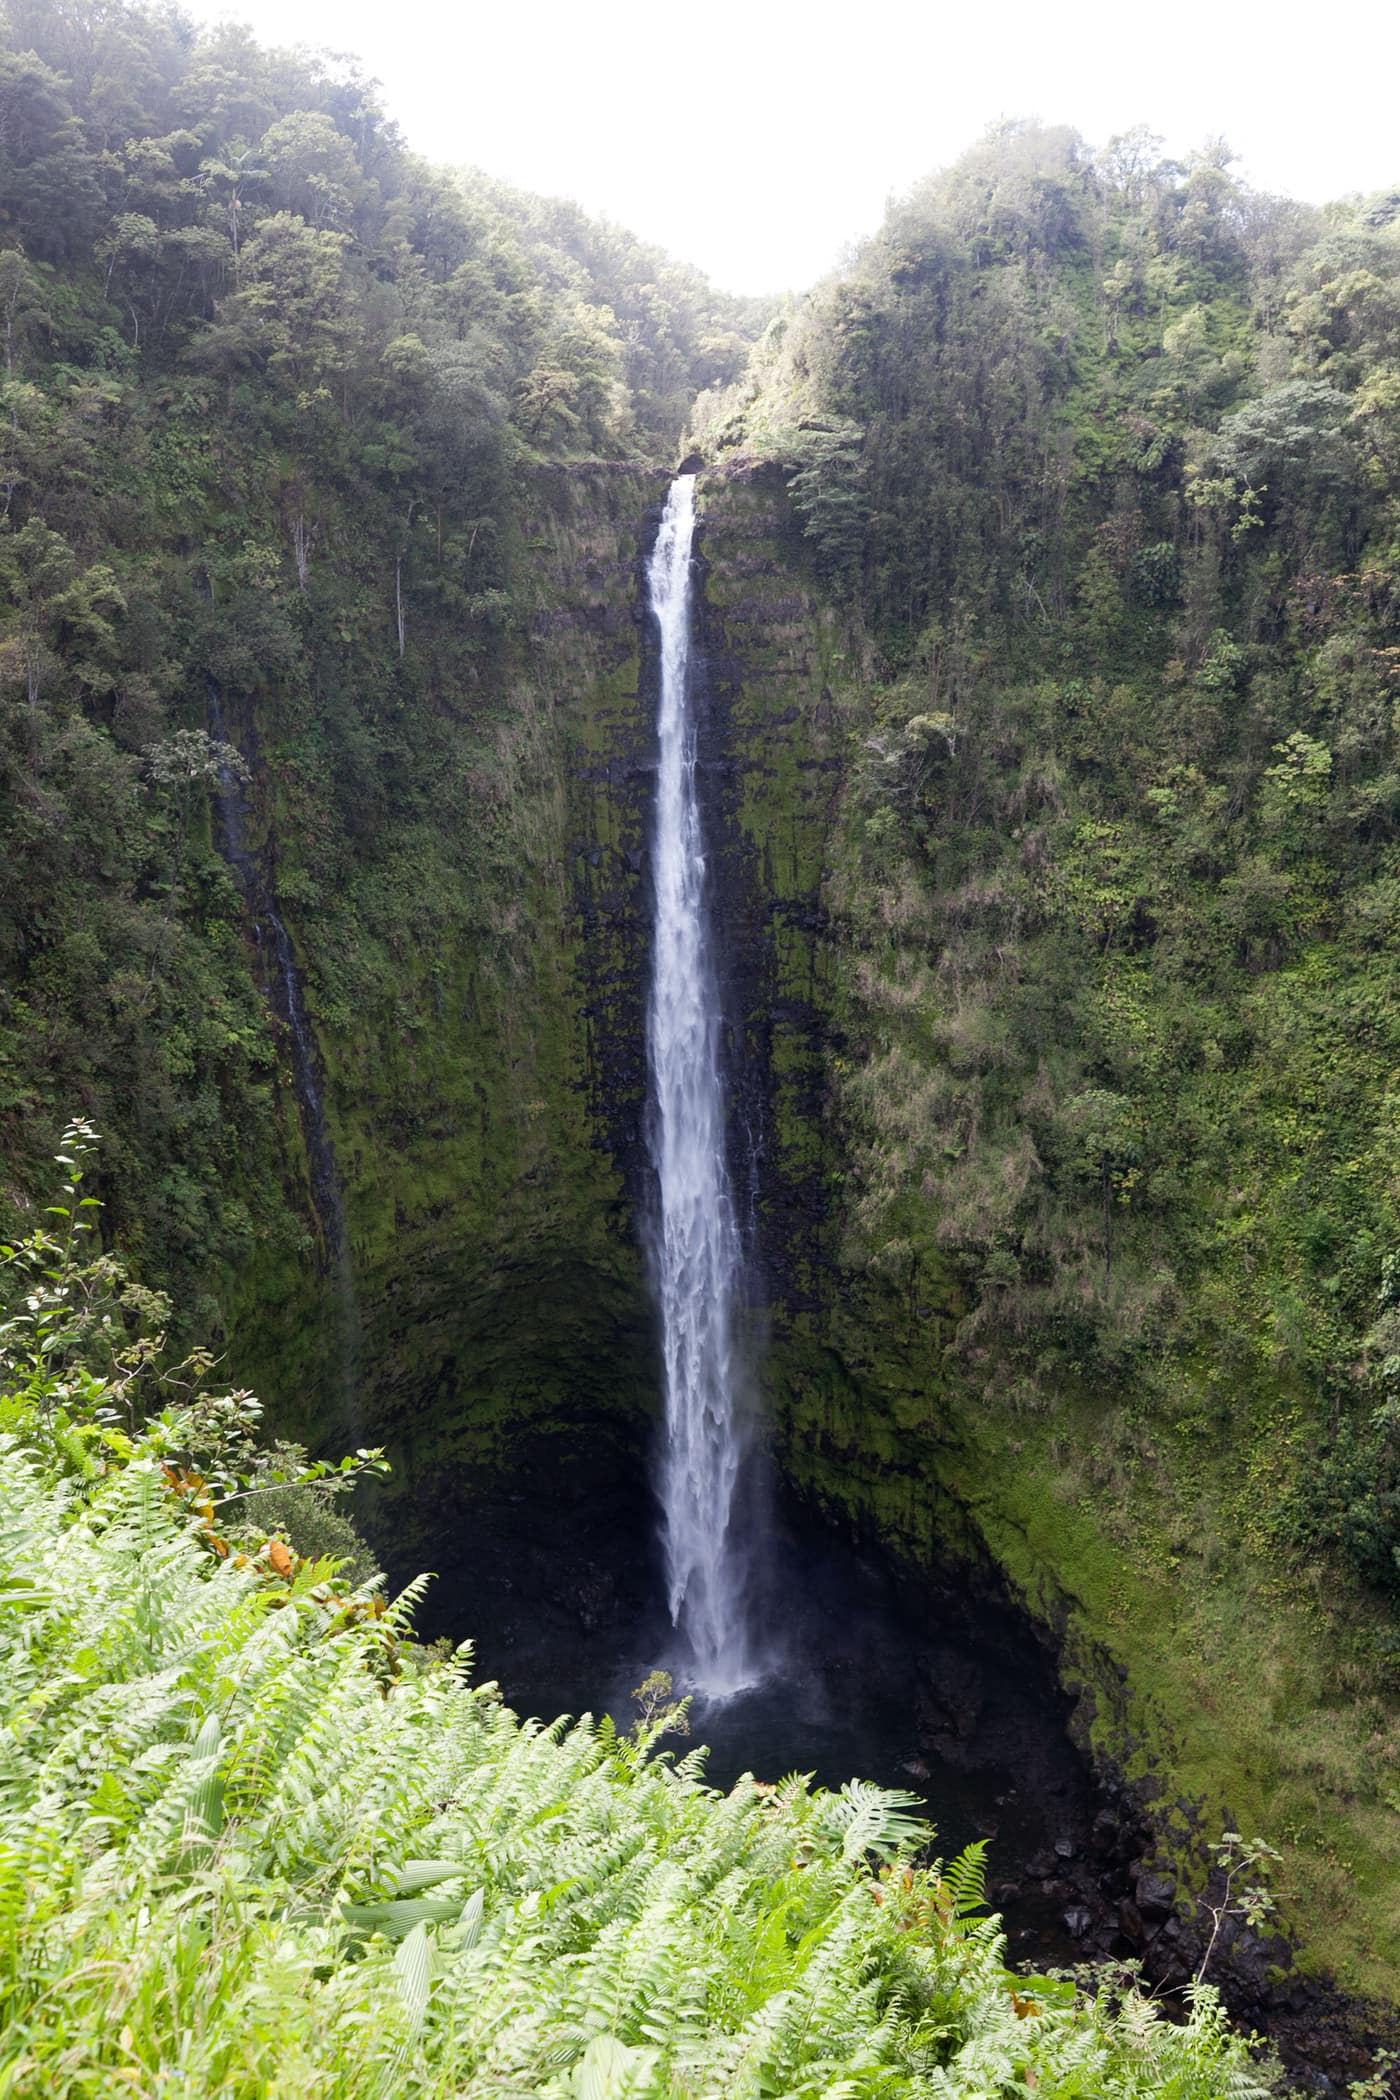 Big Island Waterfalls - Akaka Falls State Park on the Big Island, Hawaii.